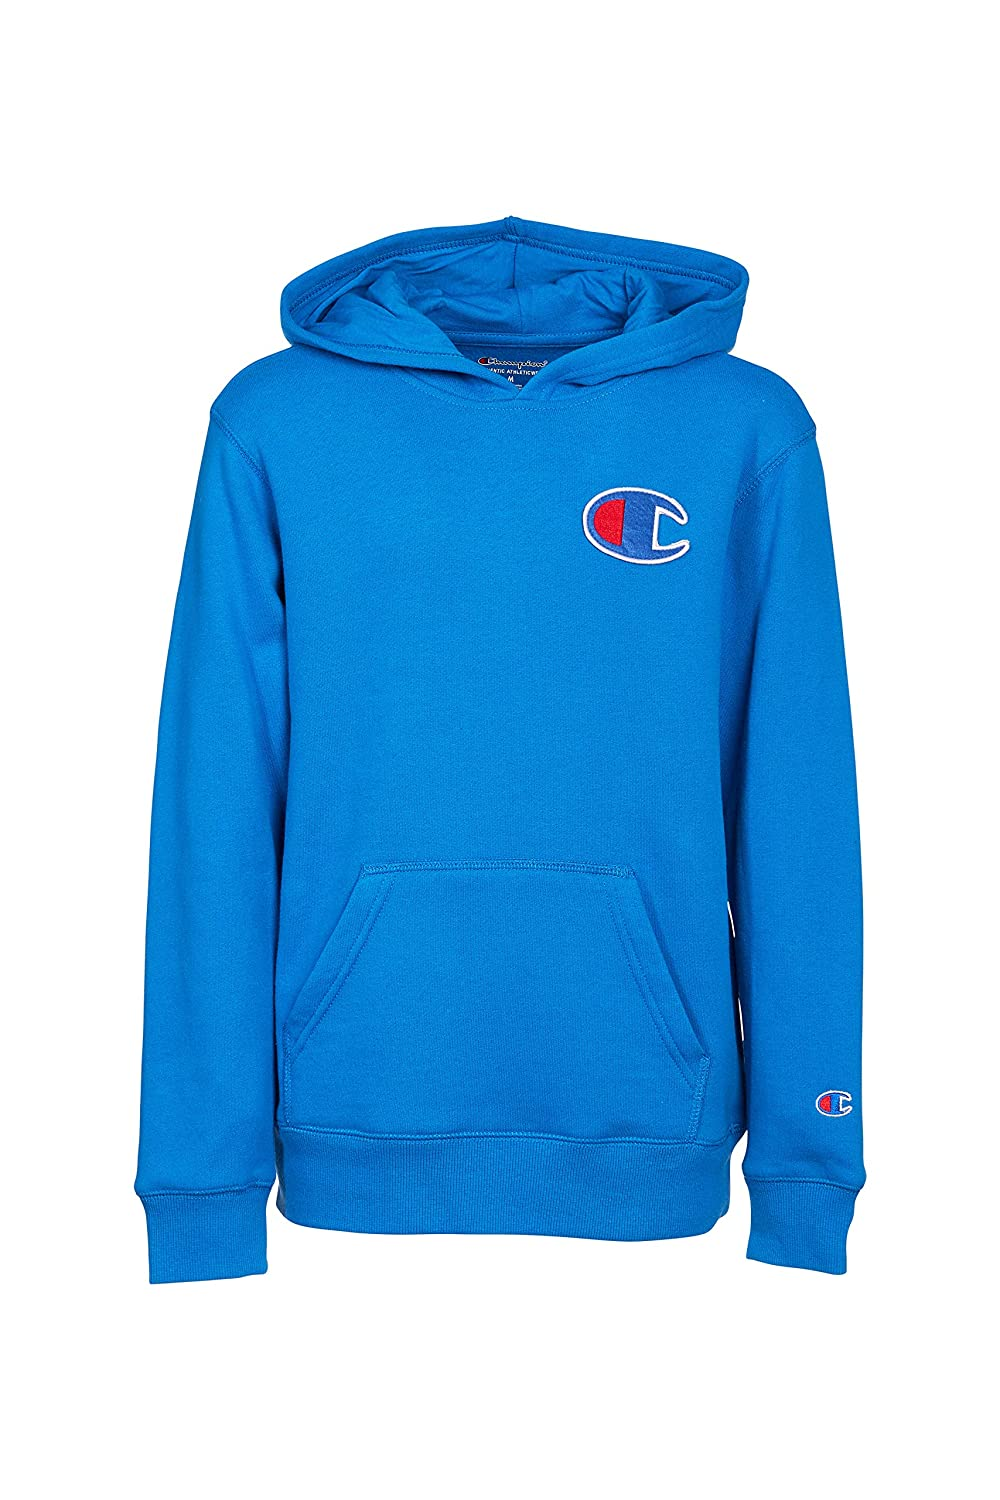 50cc662daf5 Amazon.com  Champion Youth Heritage Fleece Sweatshirt Big and Little Boys   Clothing